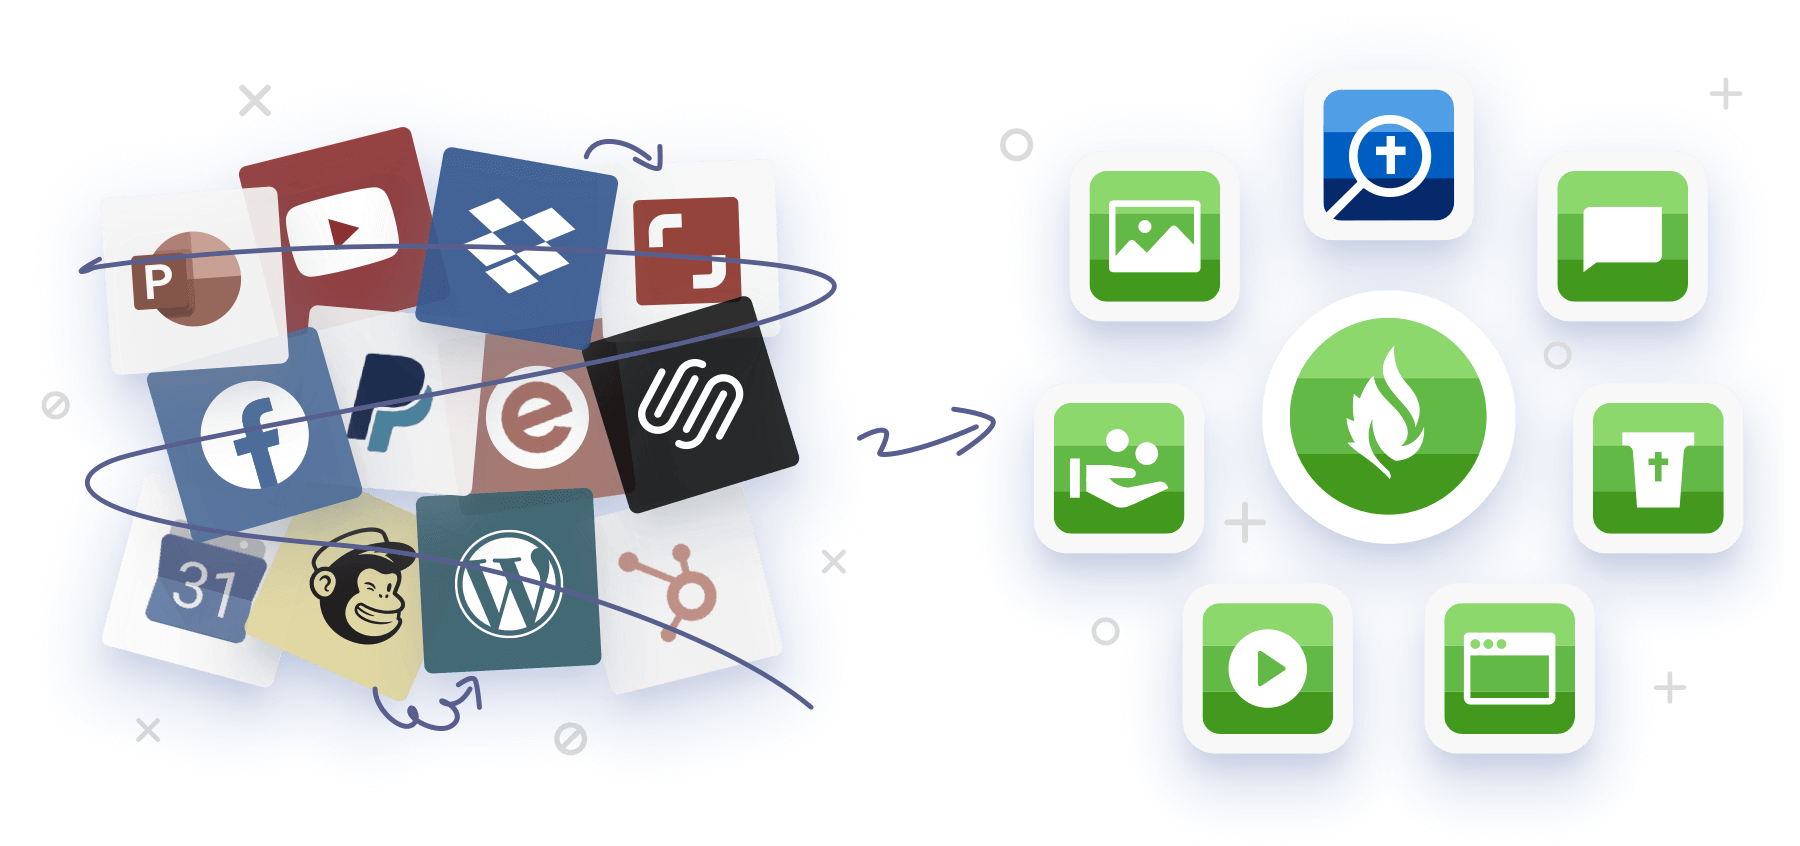 A bunch of icons for software that's traditionally used for church management, even though the software wasn't built for it. Examples are Mailchimp, YouTube, Paypal, and Powerpoint. Those are all scribbled out, and instead, there's a series of icons for Faithlife solutions, which were built specifically for the Church.